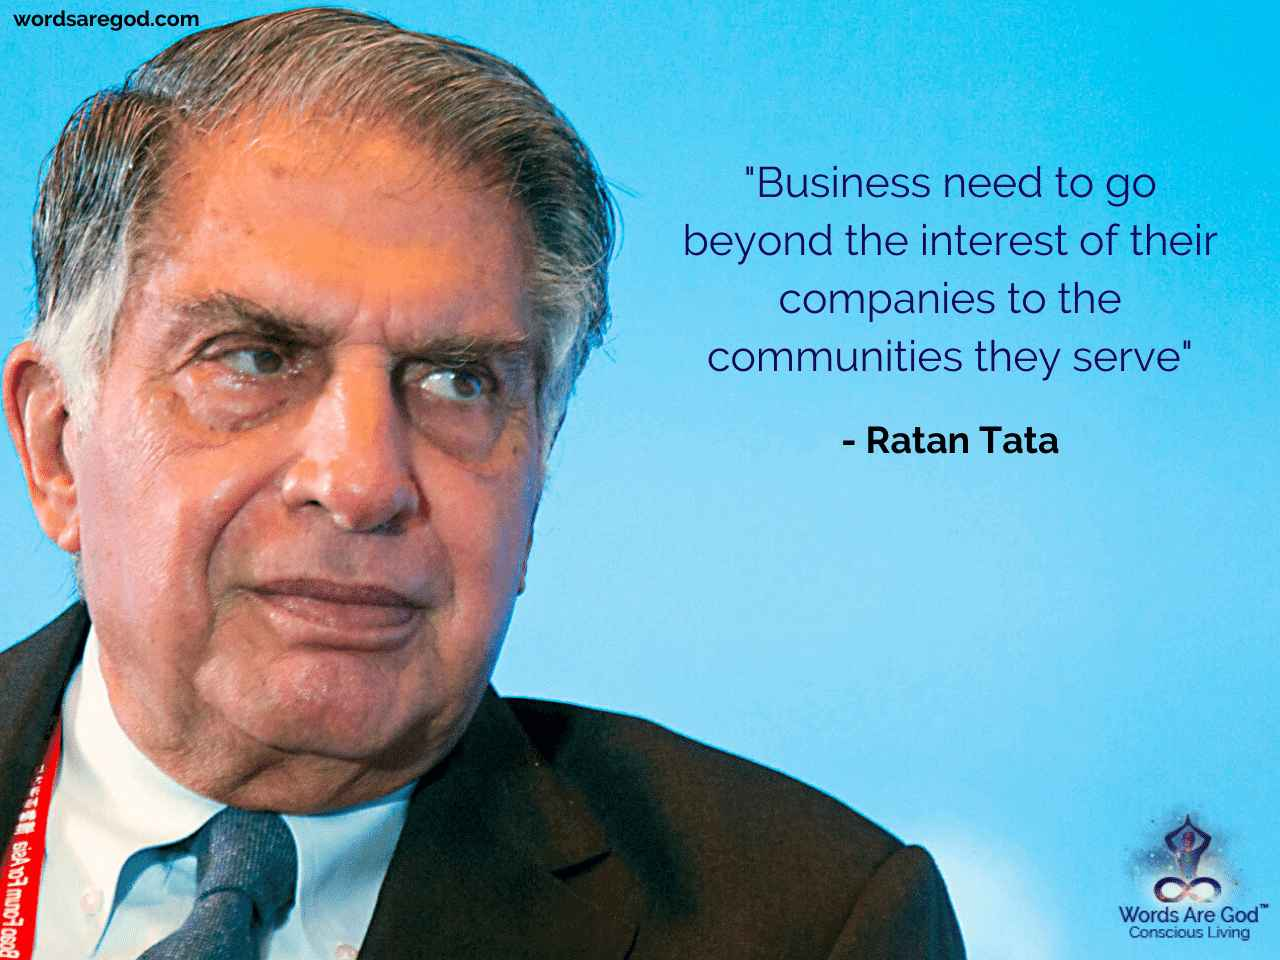 Ratan Tata Inspirational Quote by Ratan Tata